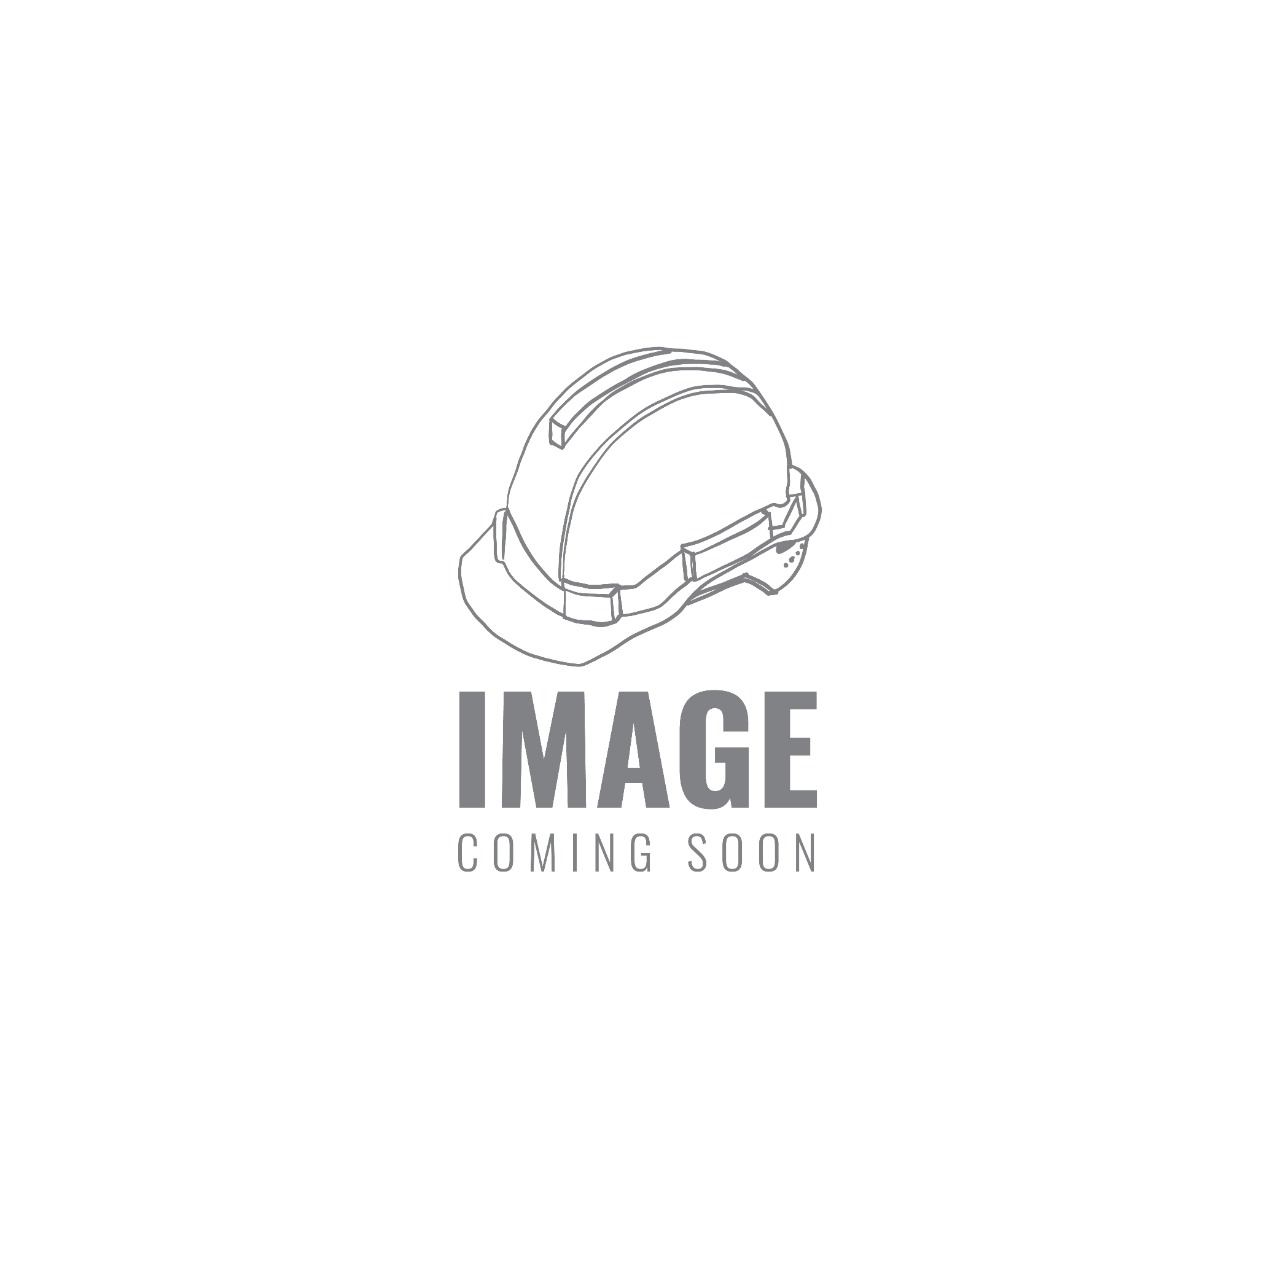 Coverall 100 % Cotton with Reflective Tape Color :Sky Blue